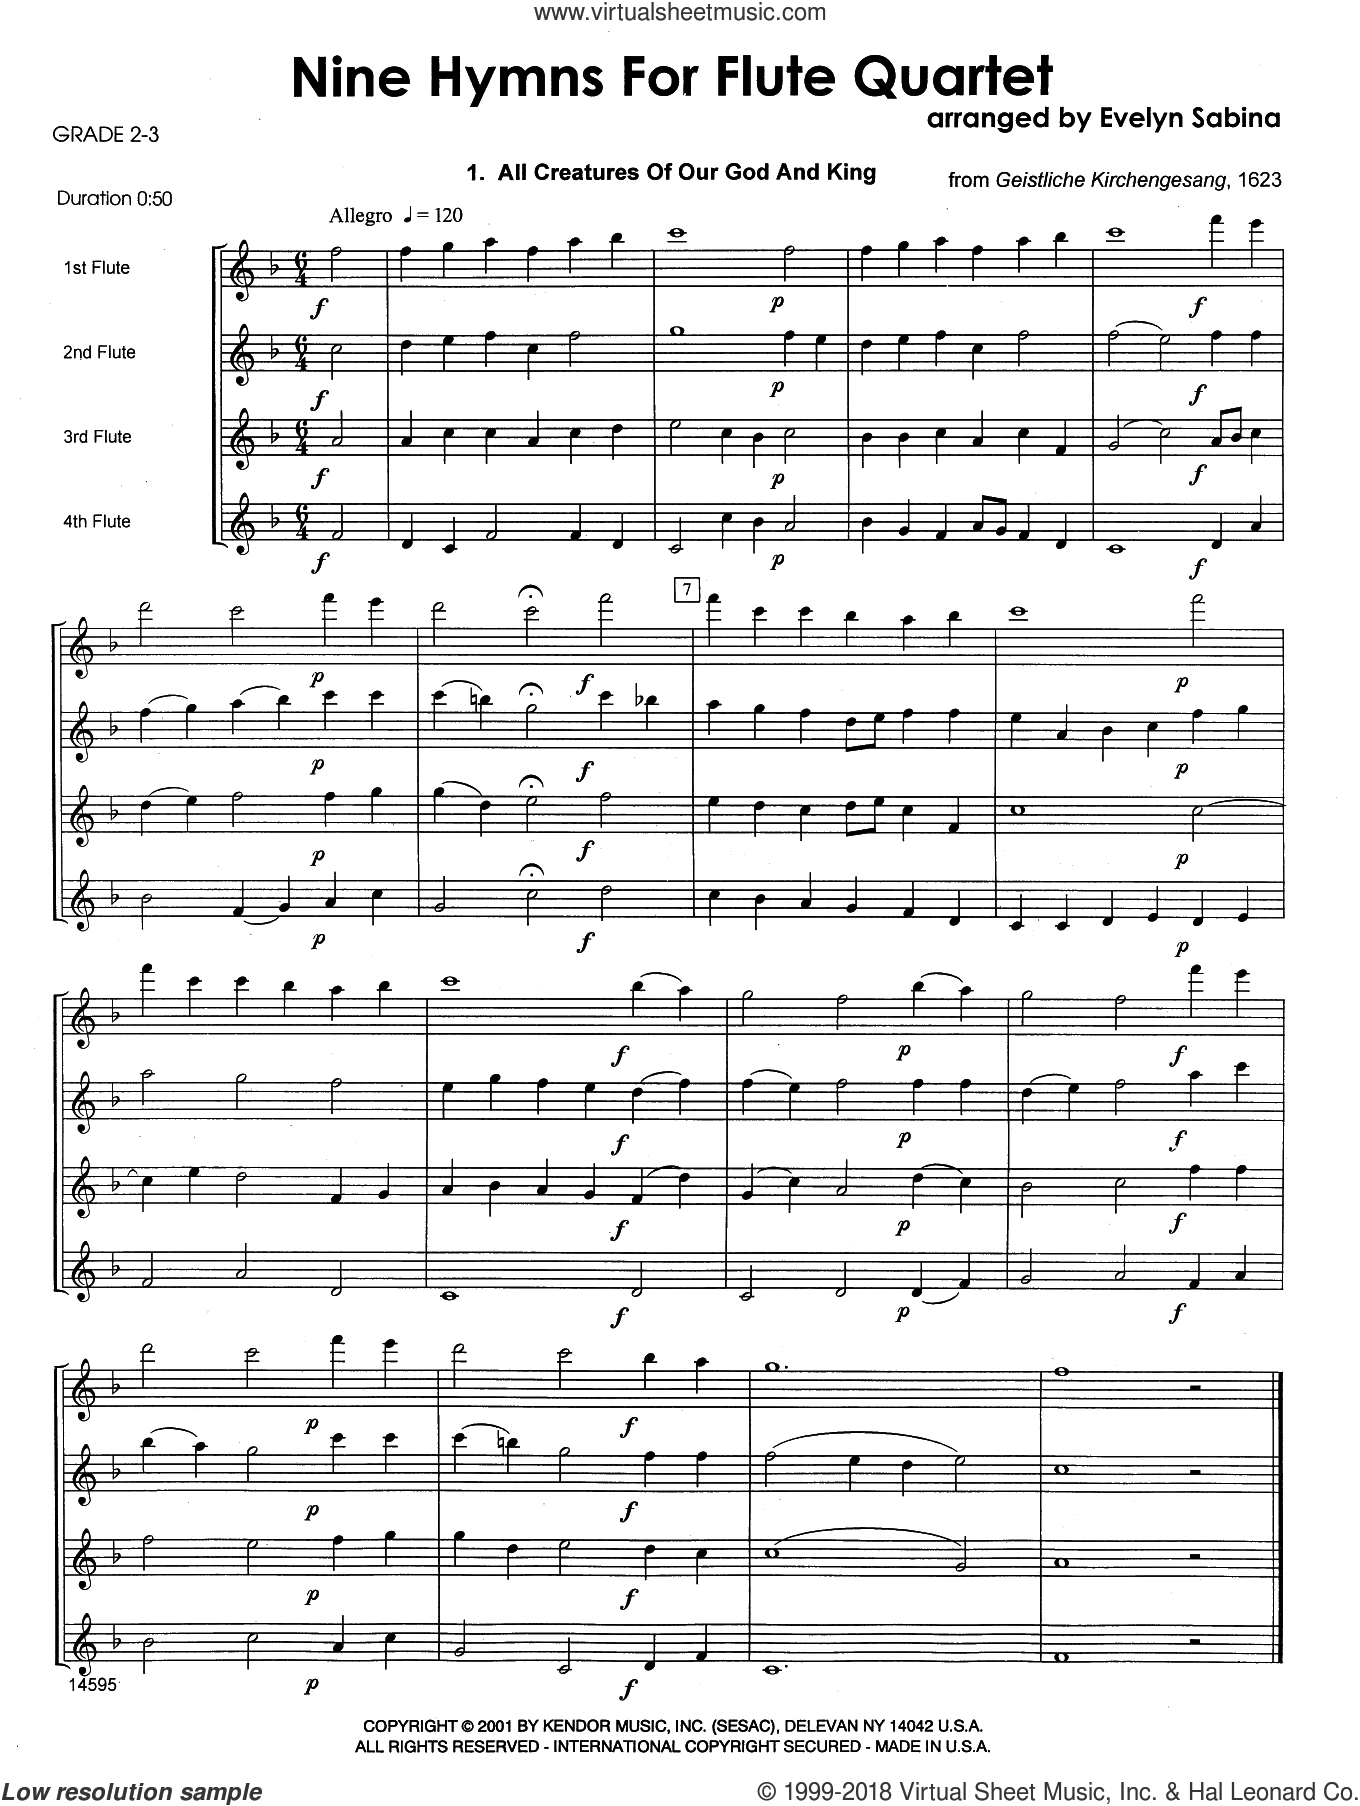 Nine Hymns For Flute Quartet (COMPLETE) sheet music for flute quartet by Evelyn Sabina and Miscellaneous, intermediate skill level